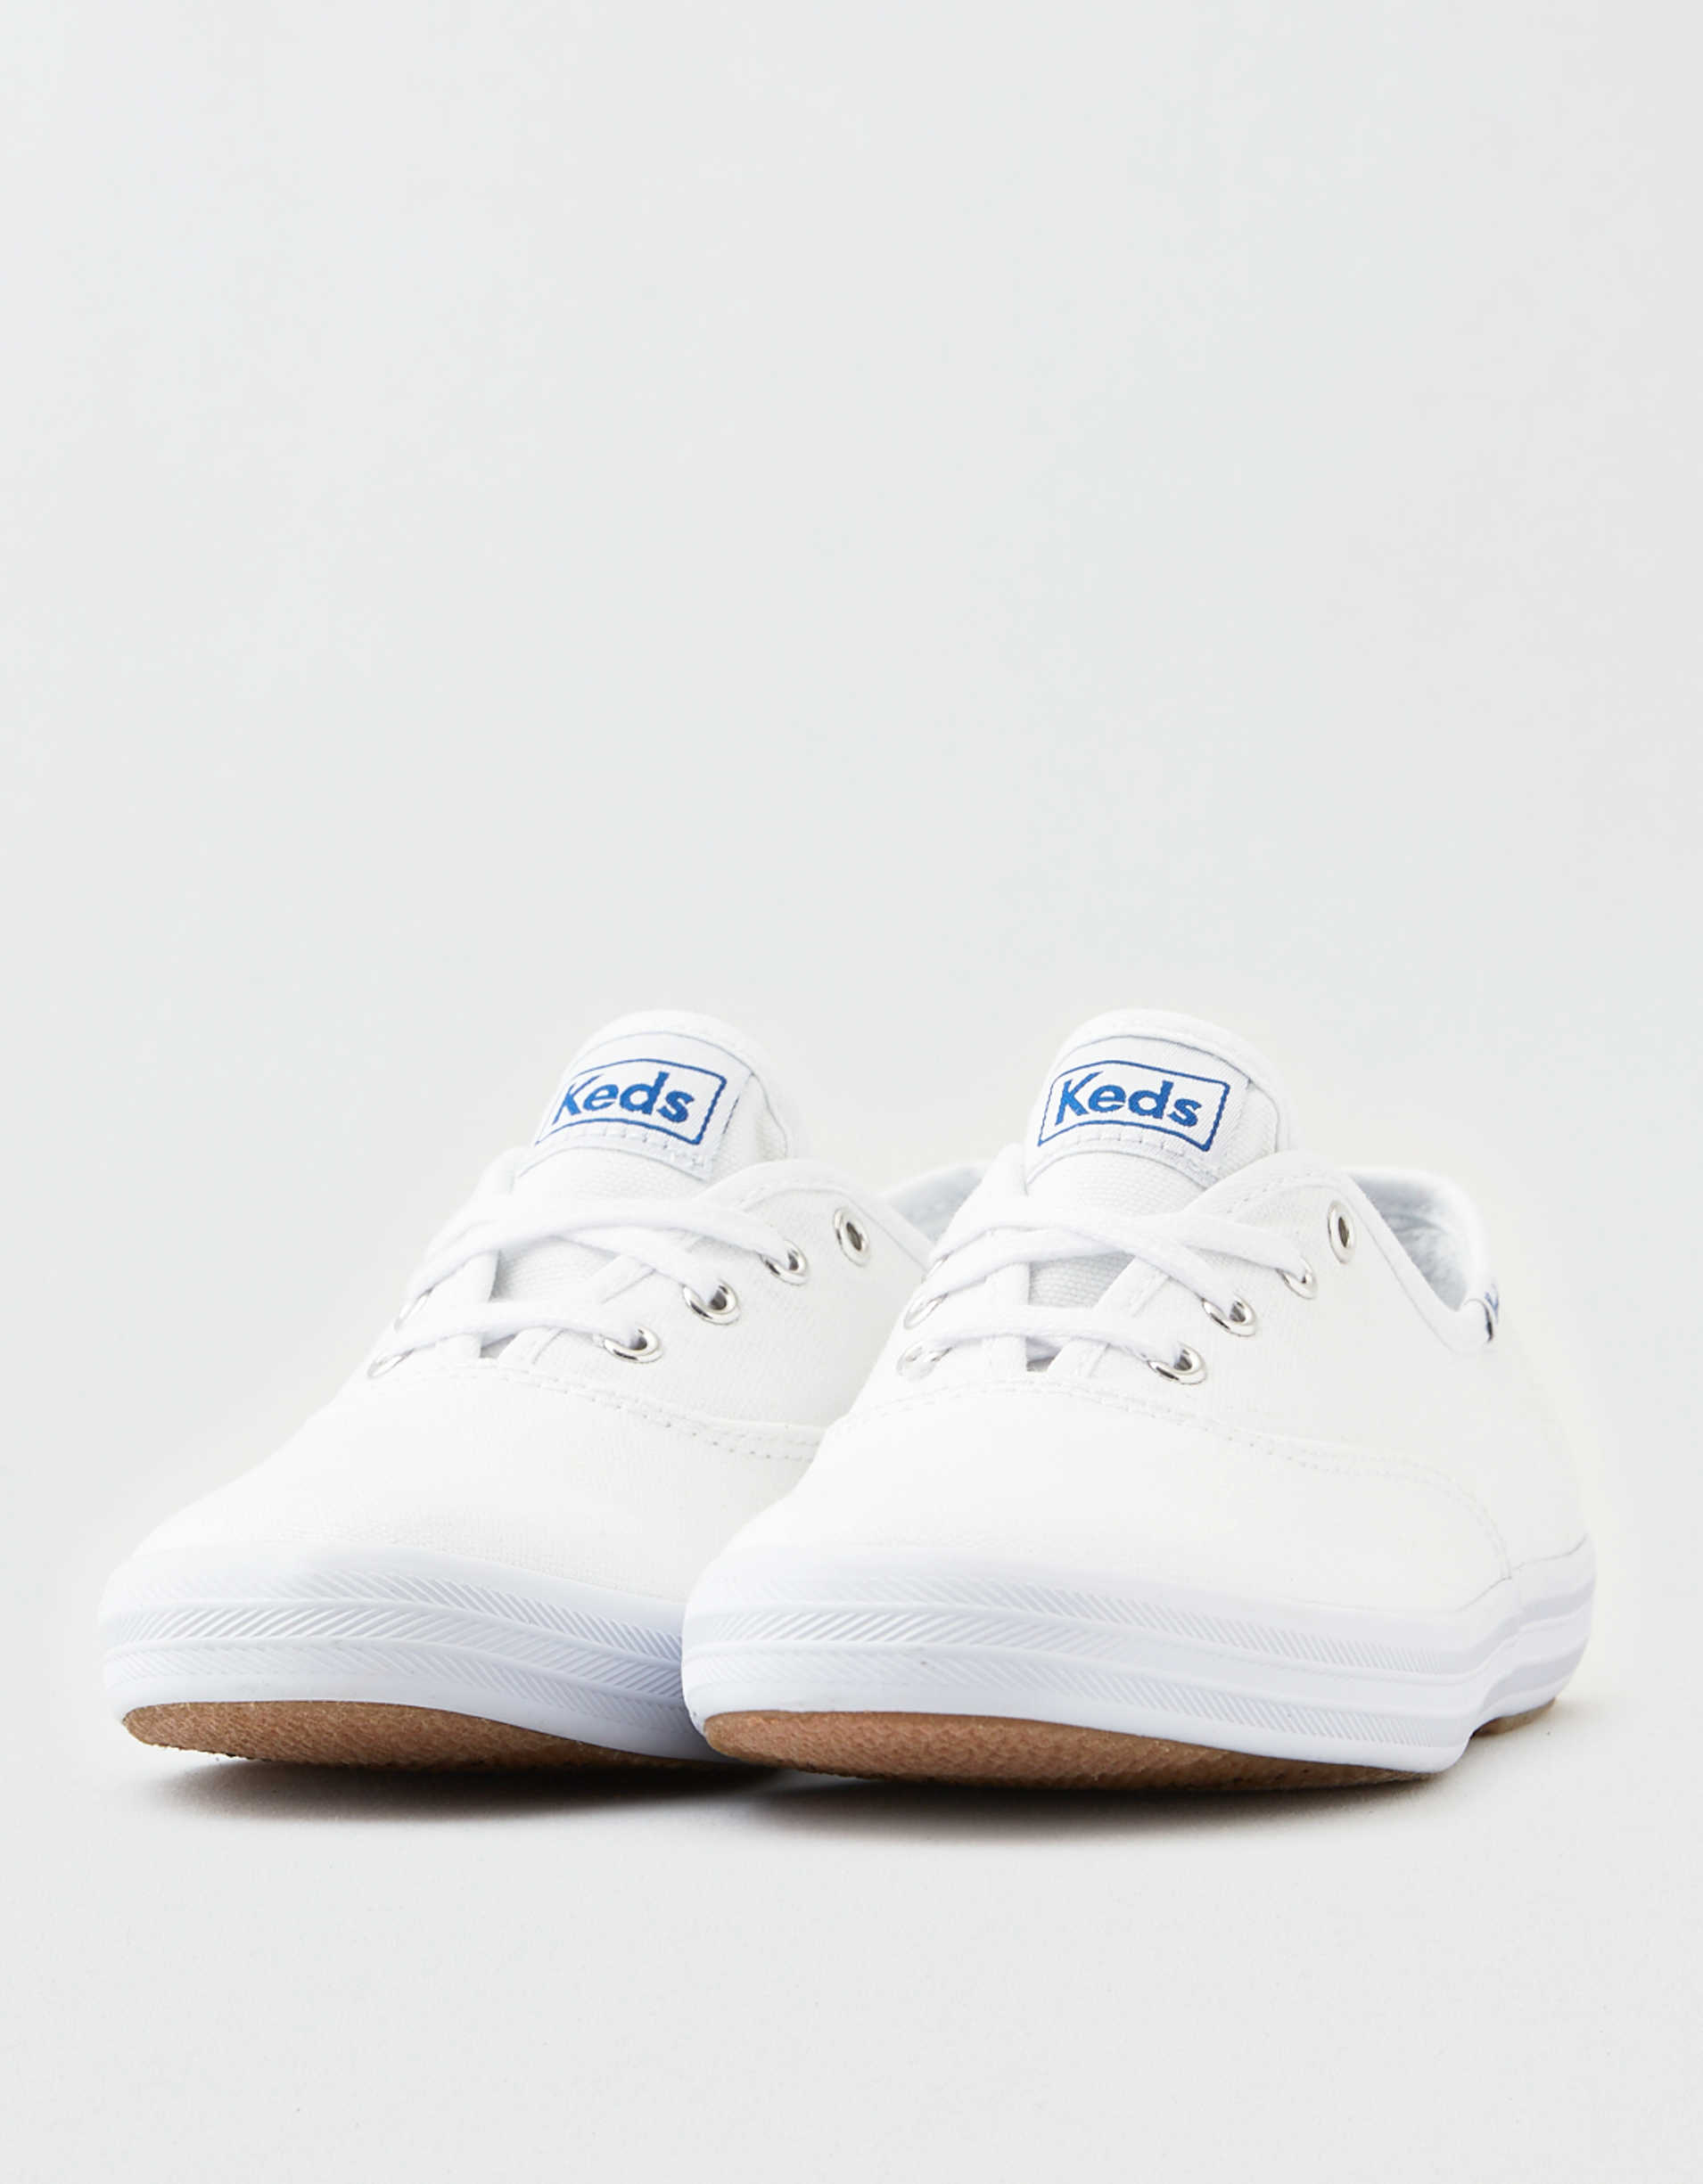 Keds Original Champion Sneaker